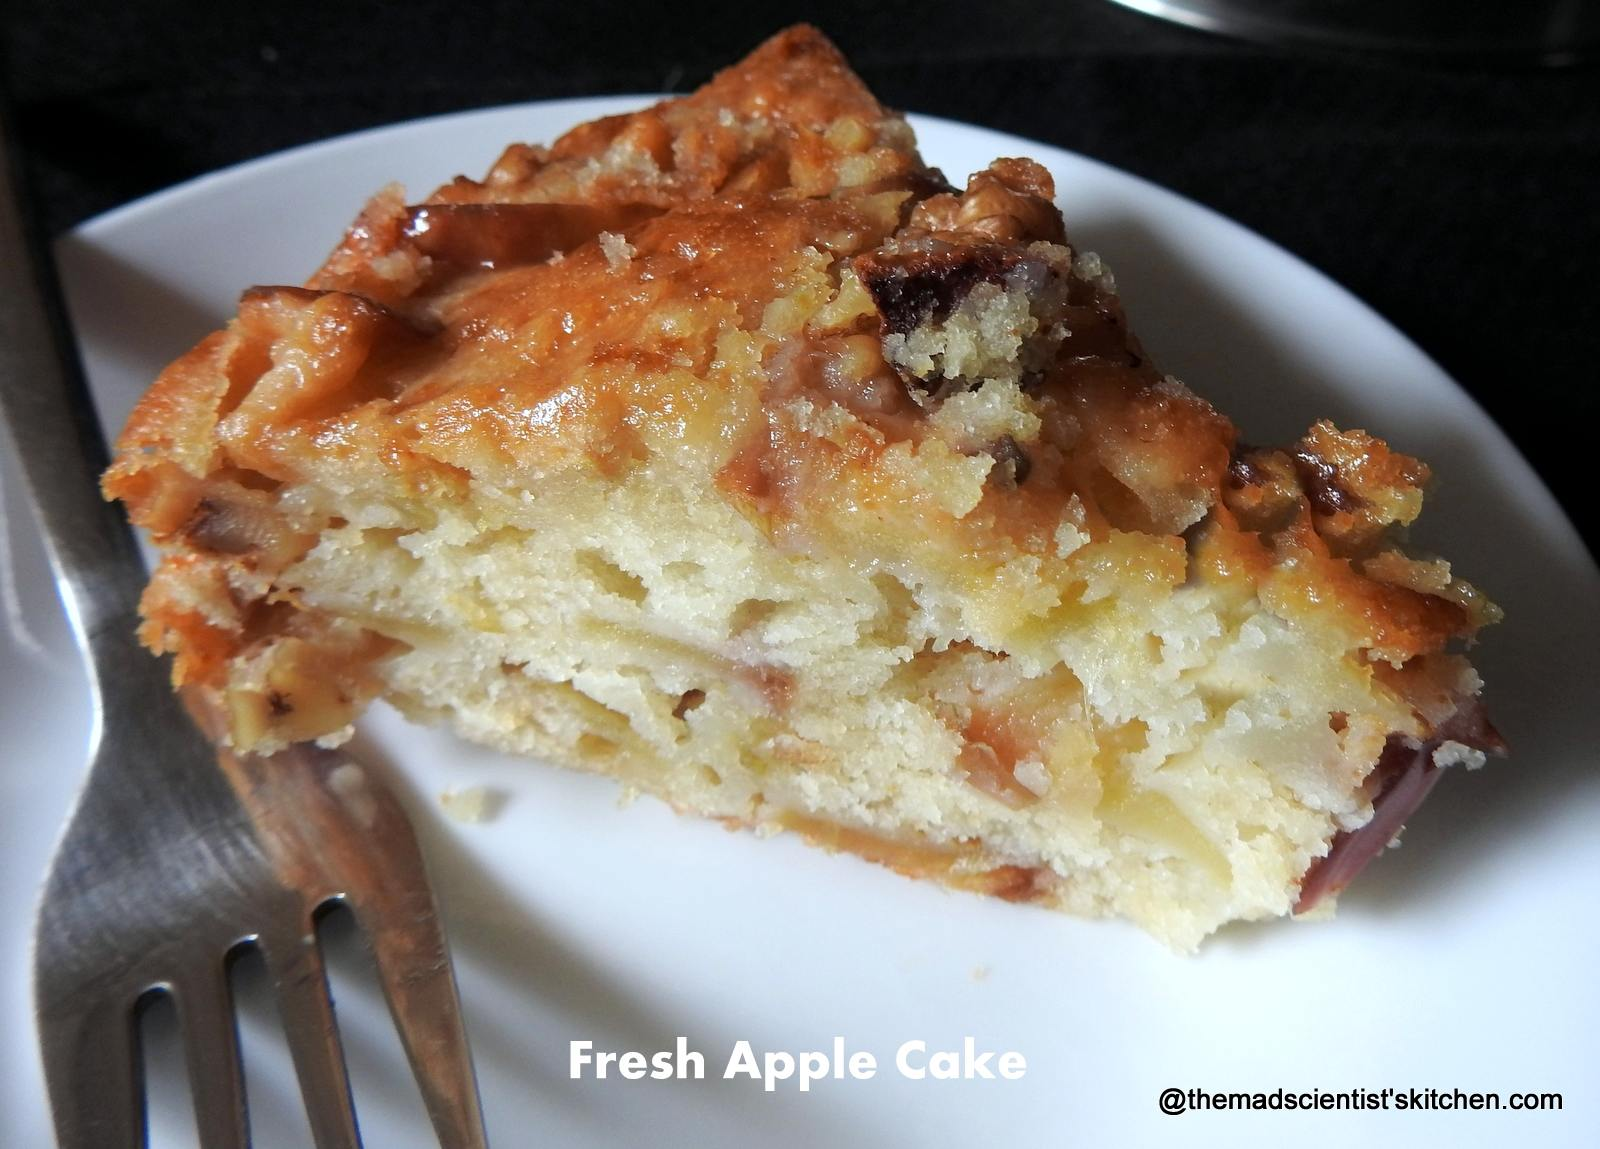 Apple Cake with Fresh Apples and Walnuts